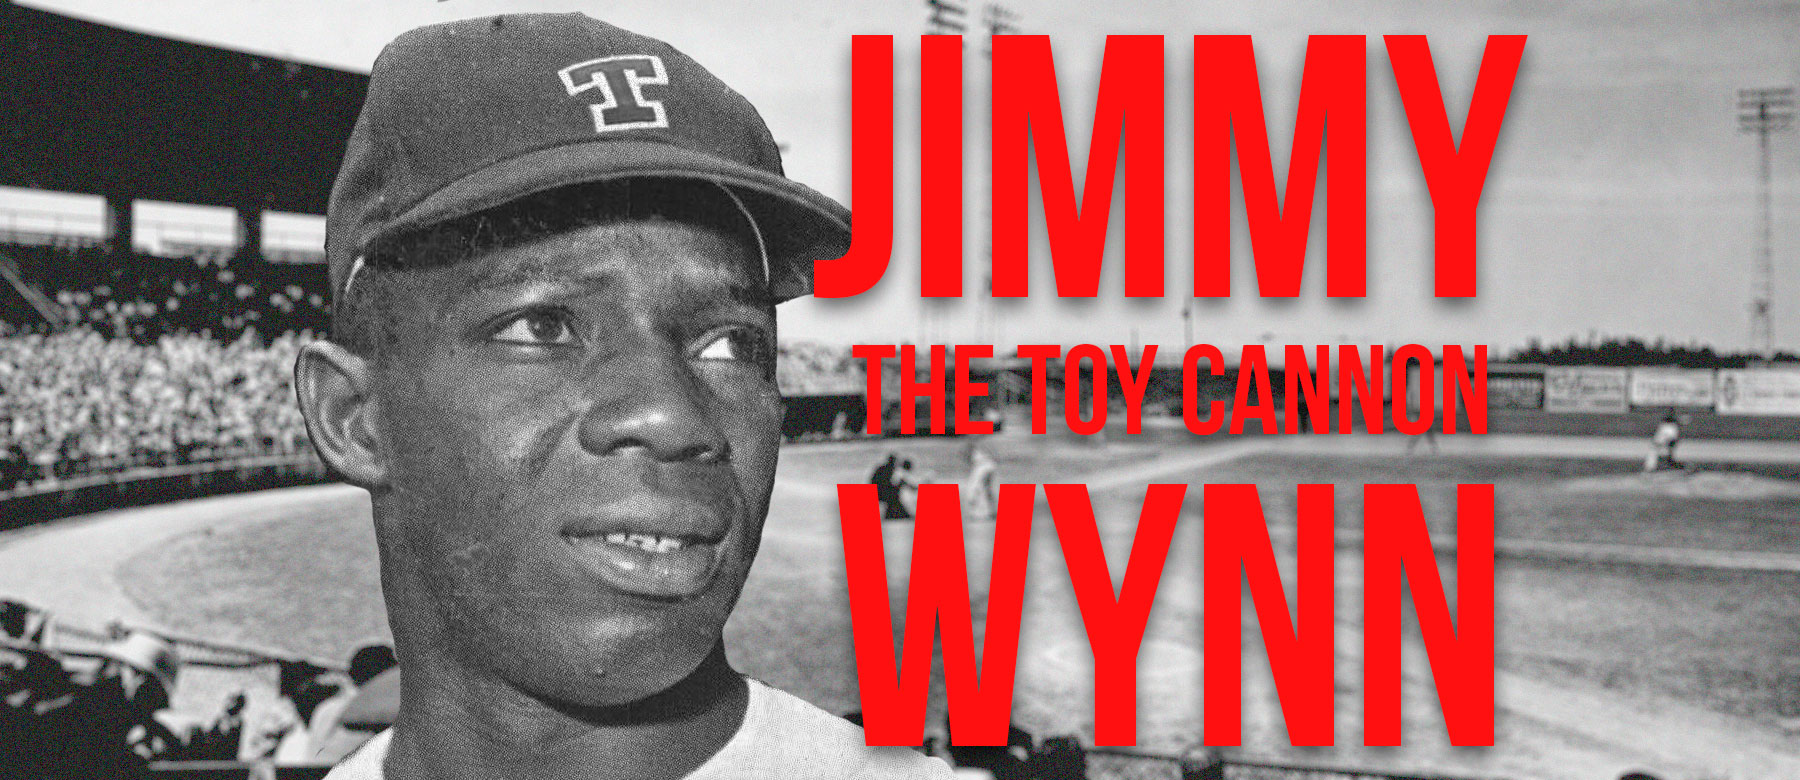 Remembering when Jimmy Wynn was with the Reds - Redleg Nation